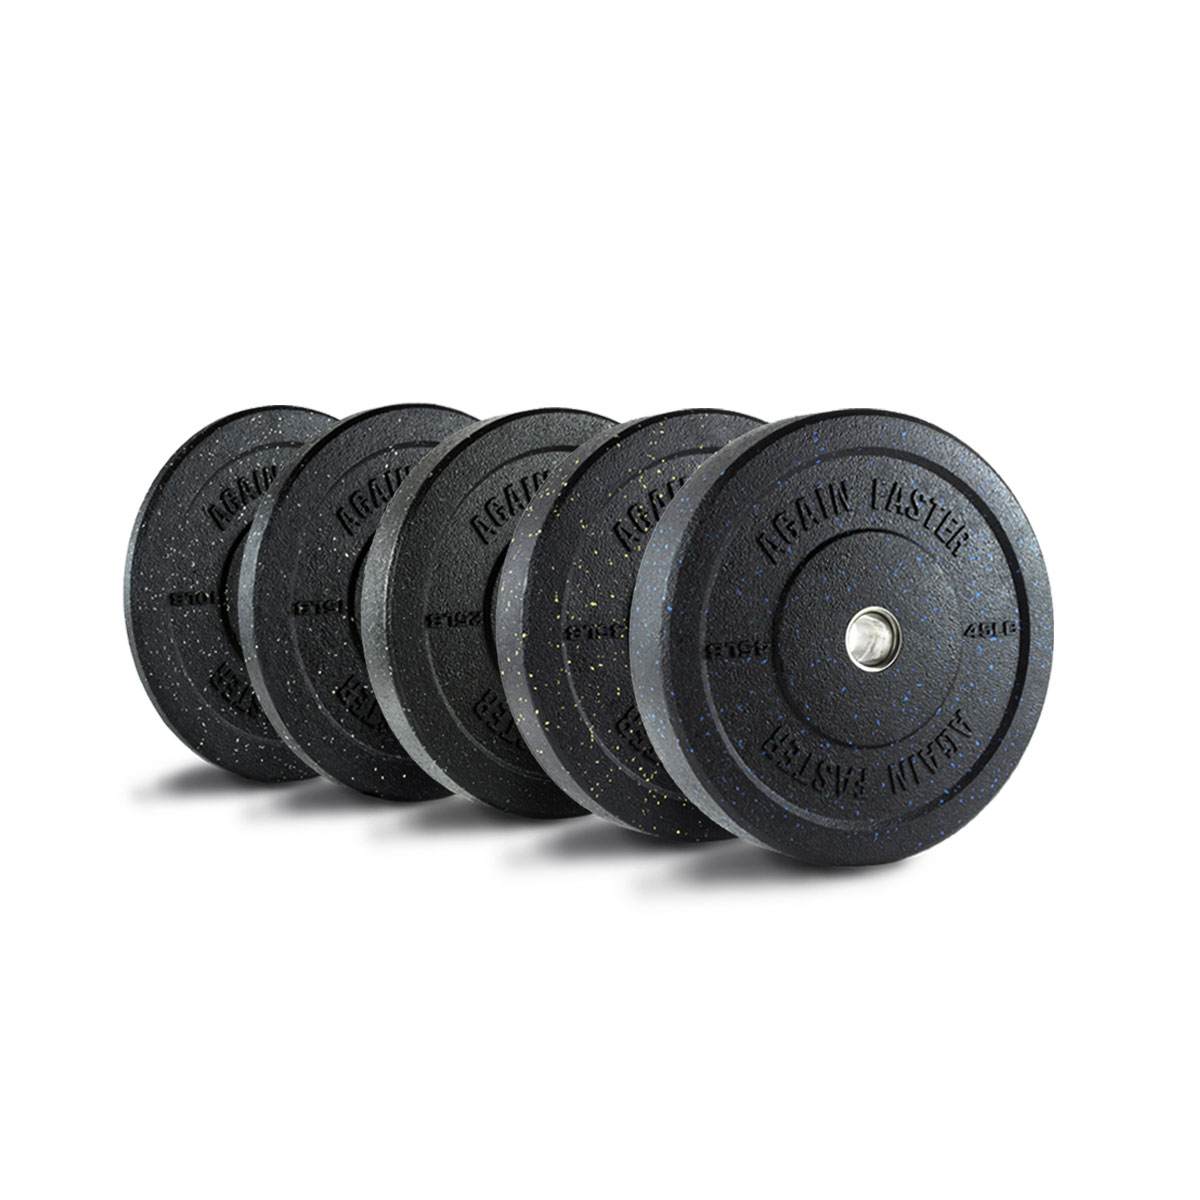 dee4714fcf70 Again Faster®. XSR Slim Rig + Barbell + 260lb Crumb Bumper Set - Currently  Out of Stock